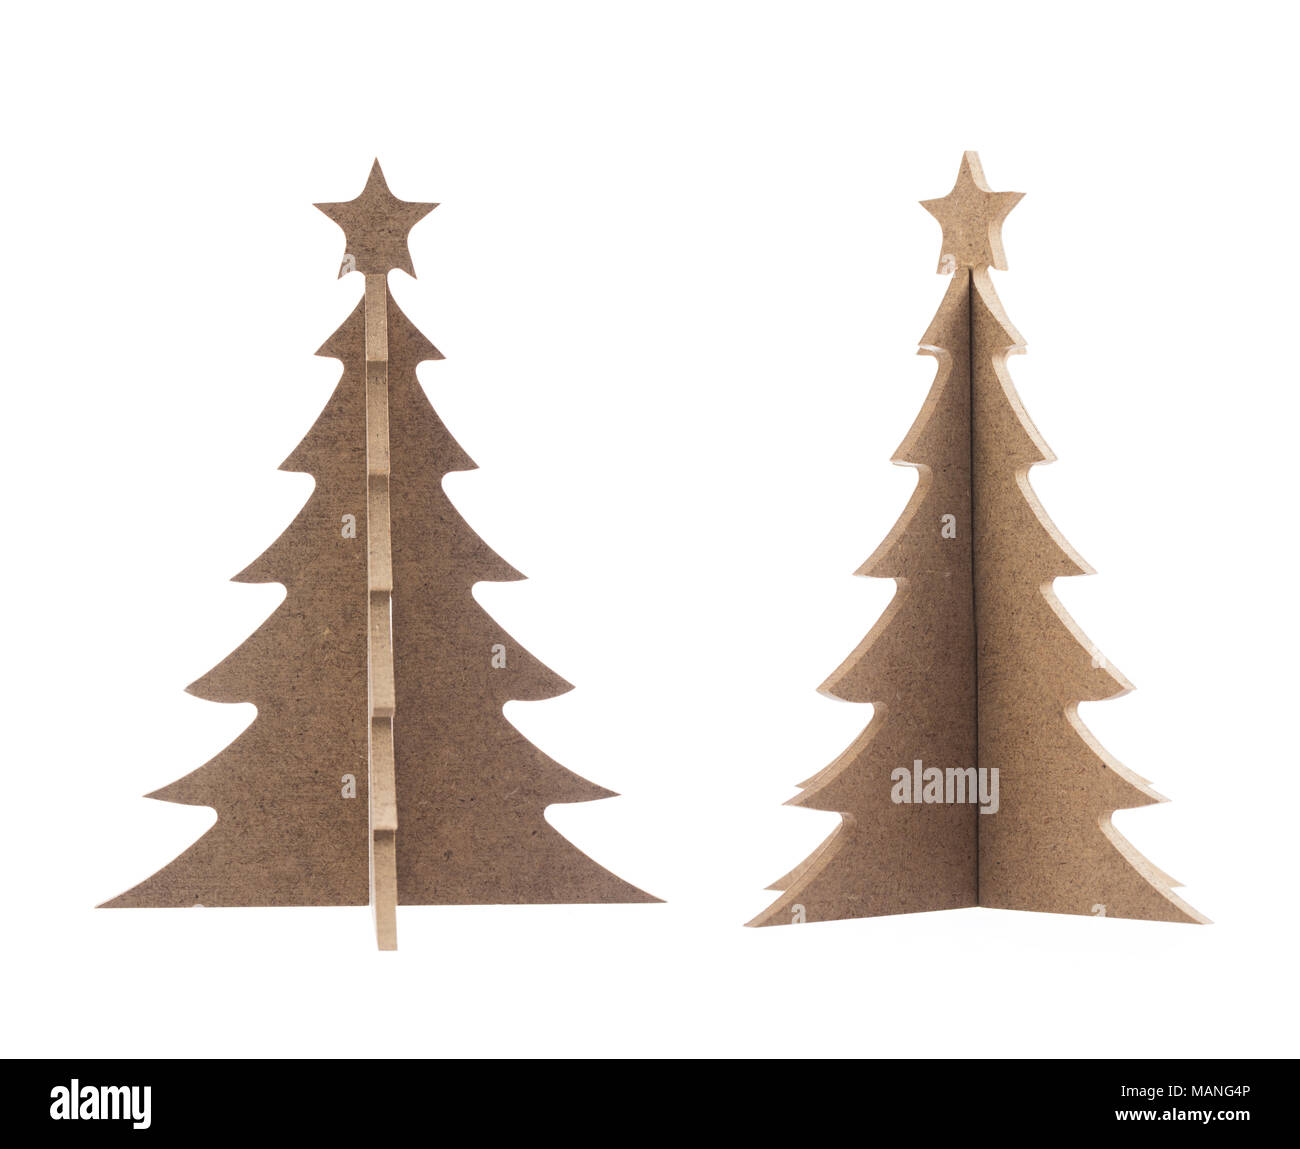 wooden christmas tree with star for decoration isolated on a white background